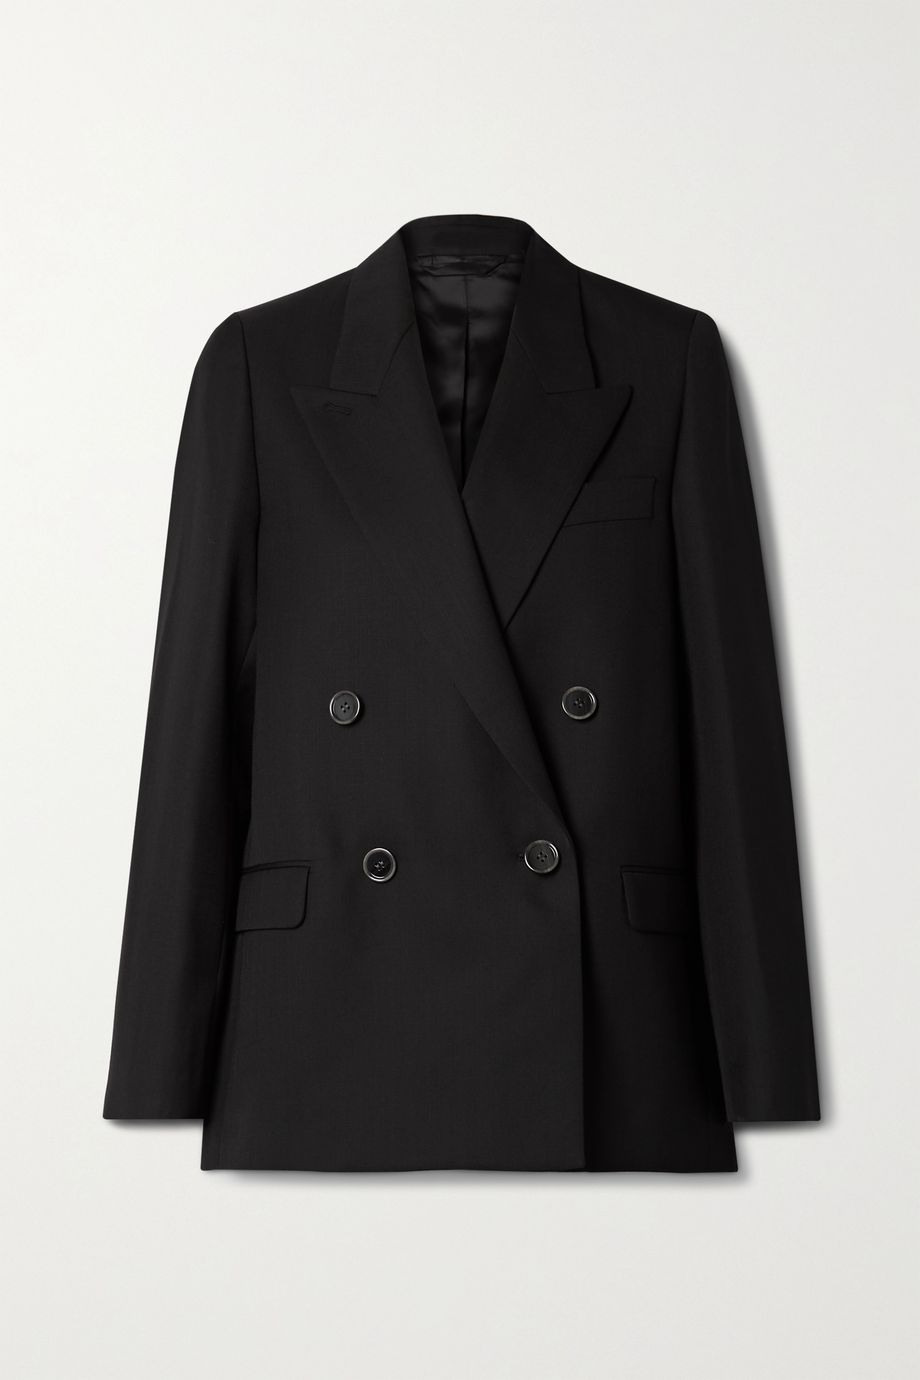 Acne Studios Double-breasted woven blazer